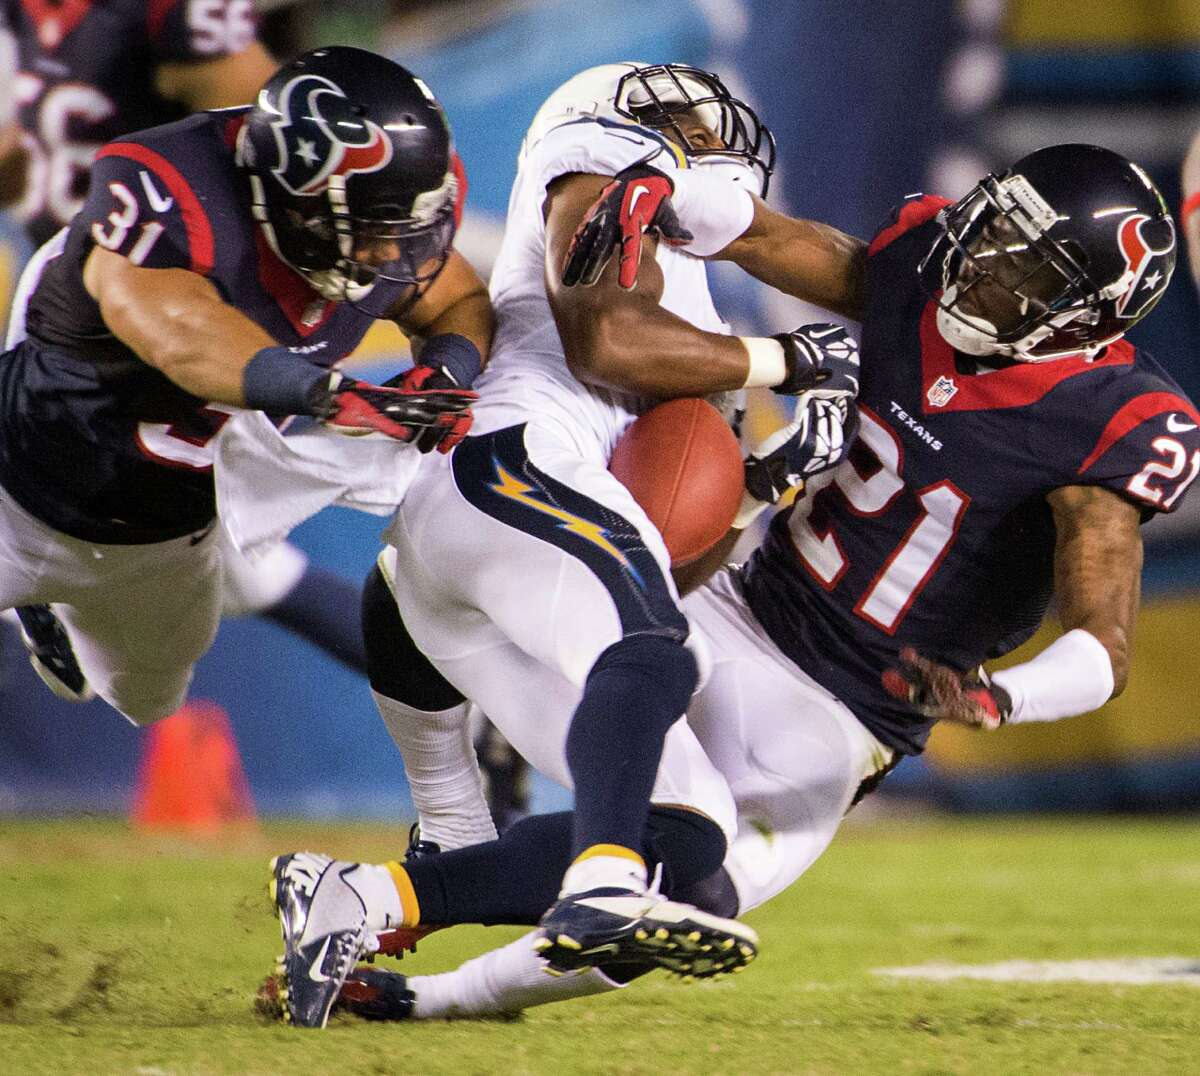 Chargers wide receiver Eddie Royal, center, can't make a catch as he is hit by Texans cornerback Brice McCain (21) and safety Shiloh Keo (31) during the third quarter Monday night.